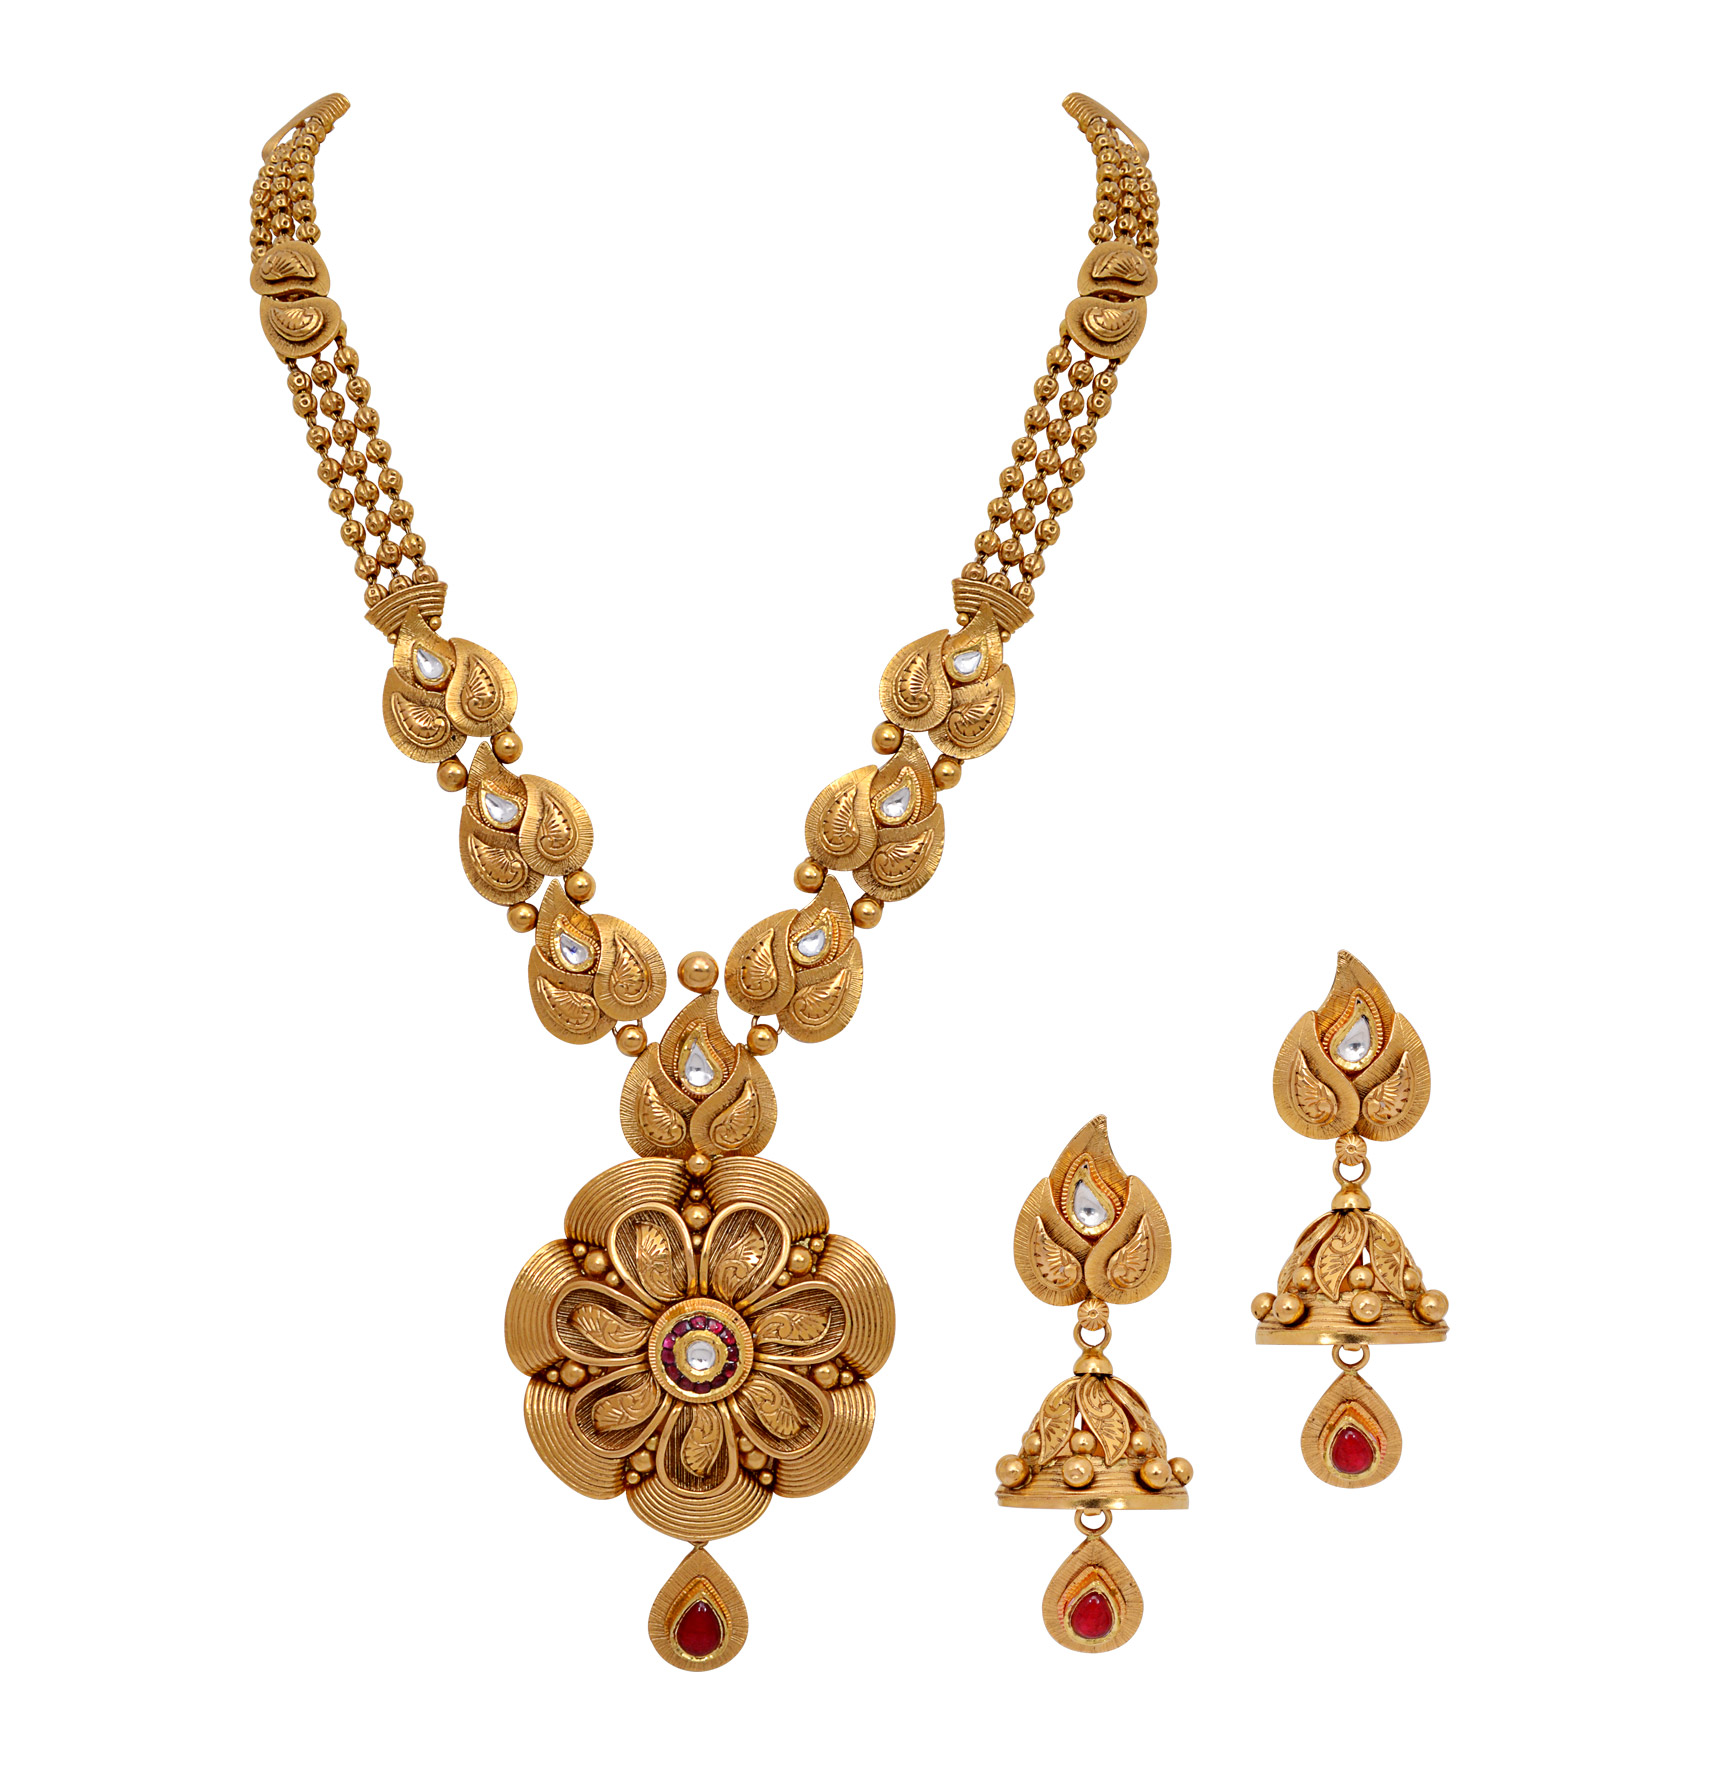 Gold necklace designs in grt jewellers - The Swanky Sanaz Necklace